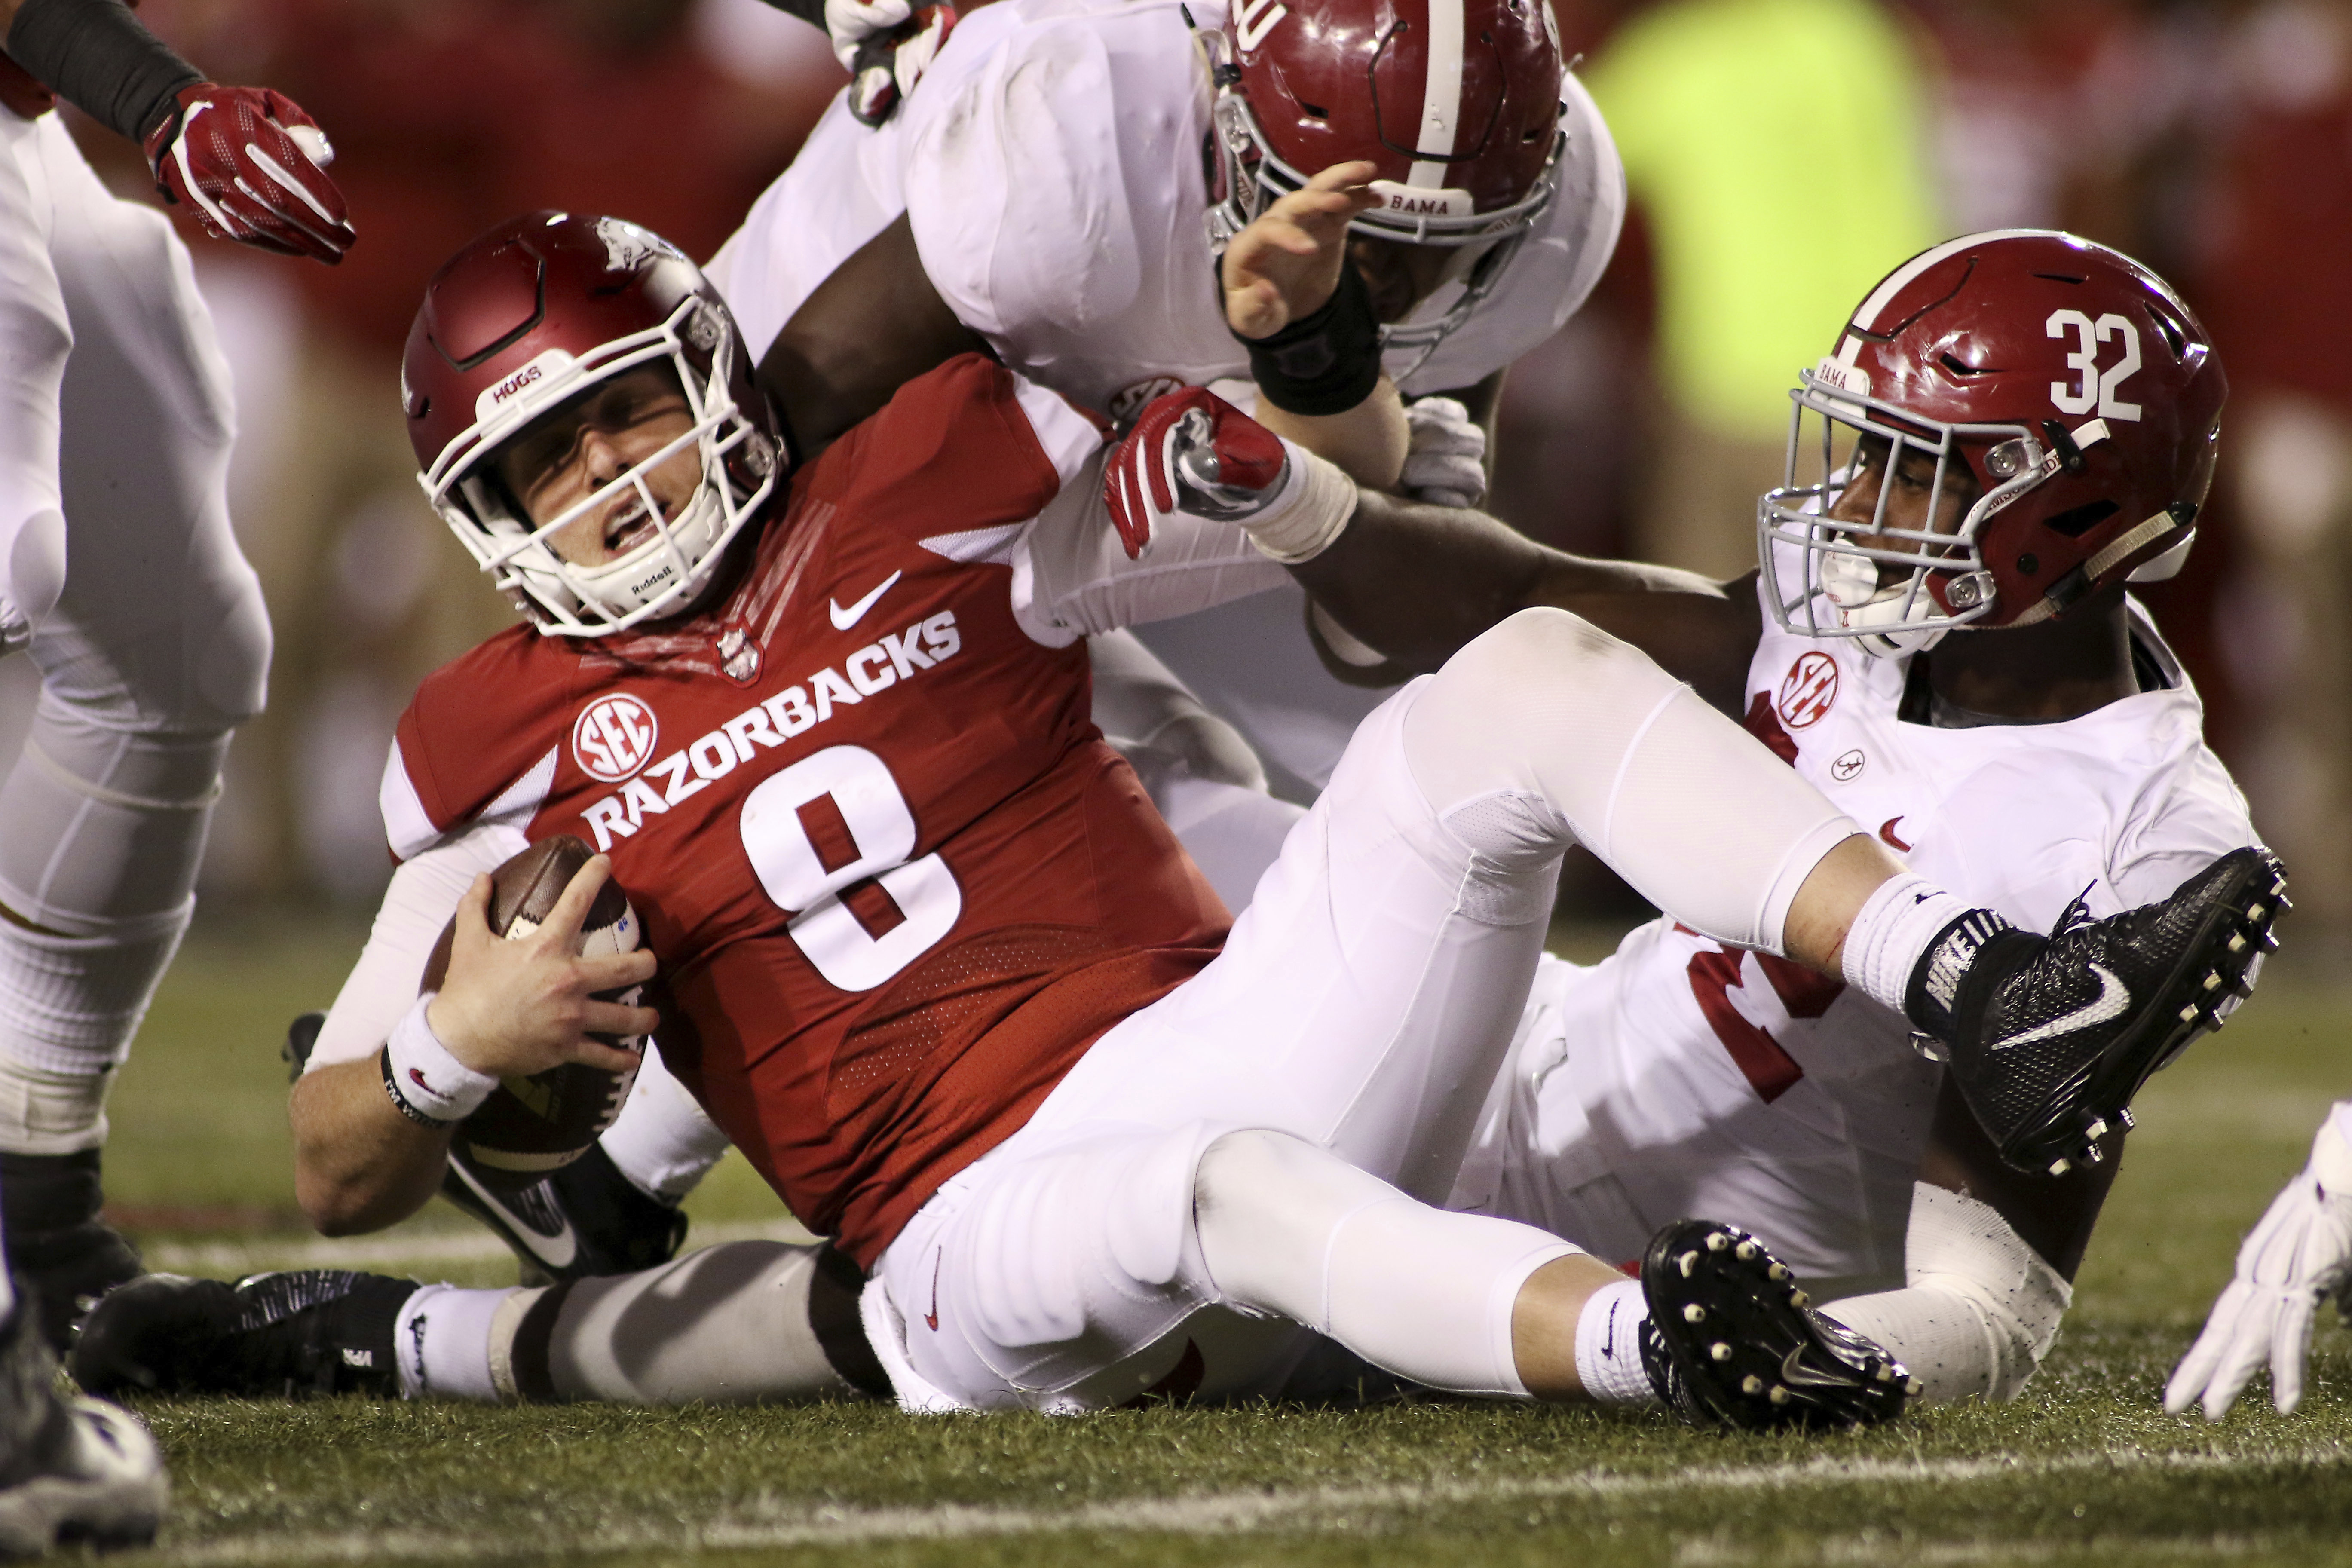 Arkansas' Austin Allen (8) is pulled to the ground by Alabama's Rashaan Evan (32) during the third quarter of an NCAA college football game Saturday, Oct. 8, 2016, in Fayetteville, Ark. Alabama won 49-30. (AP Photo/Samantha Baker)